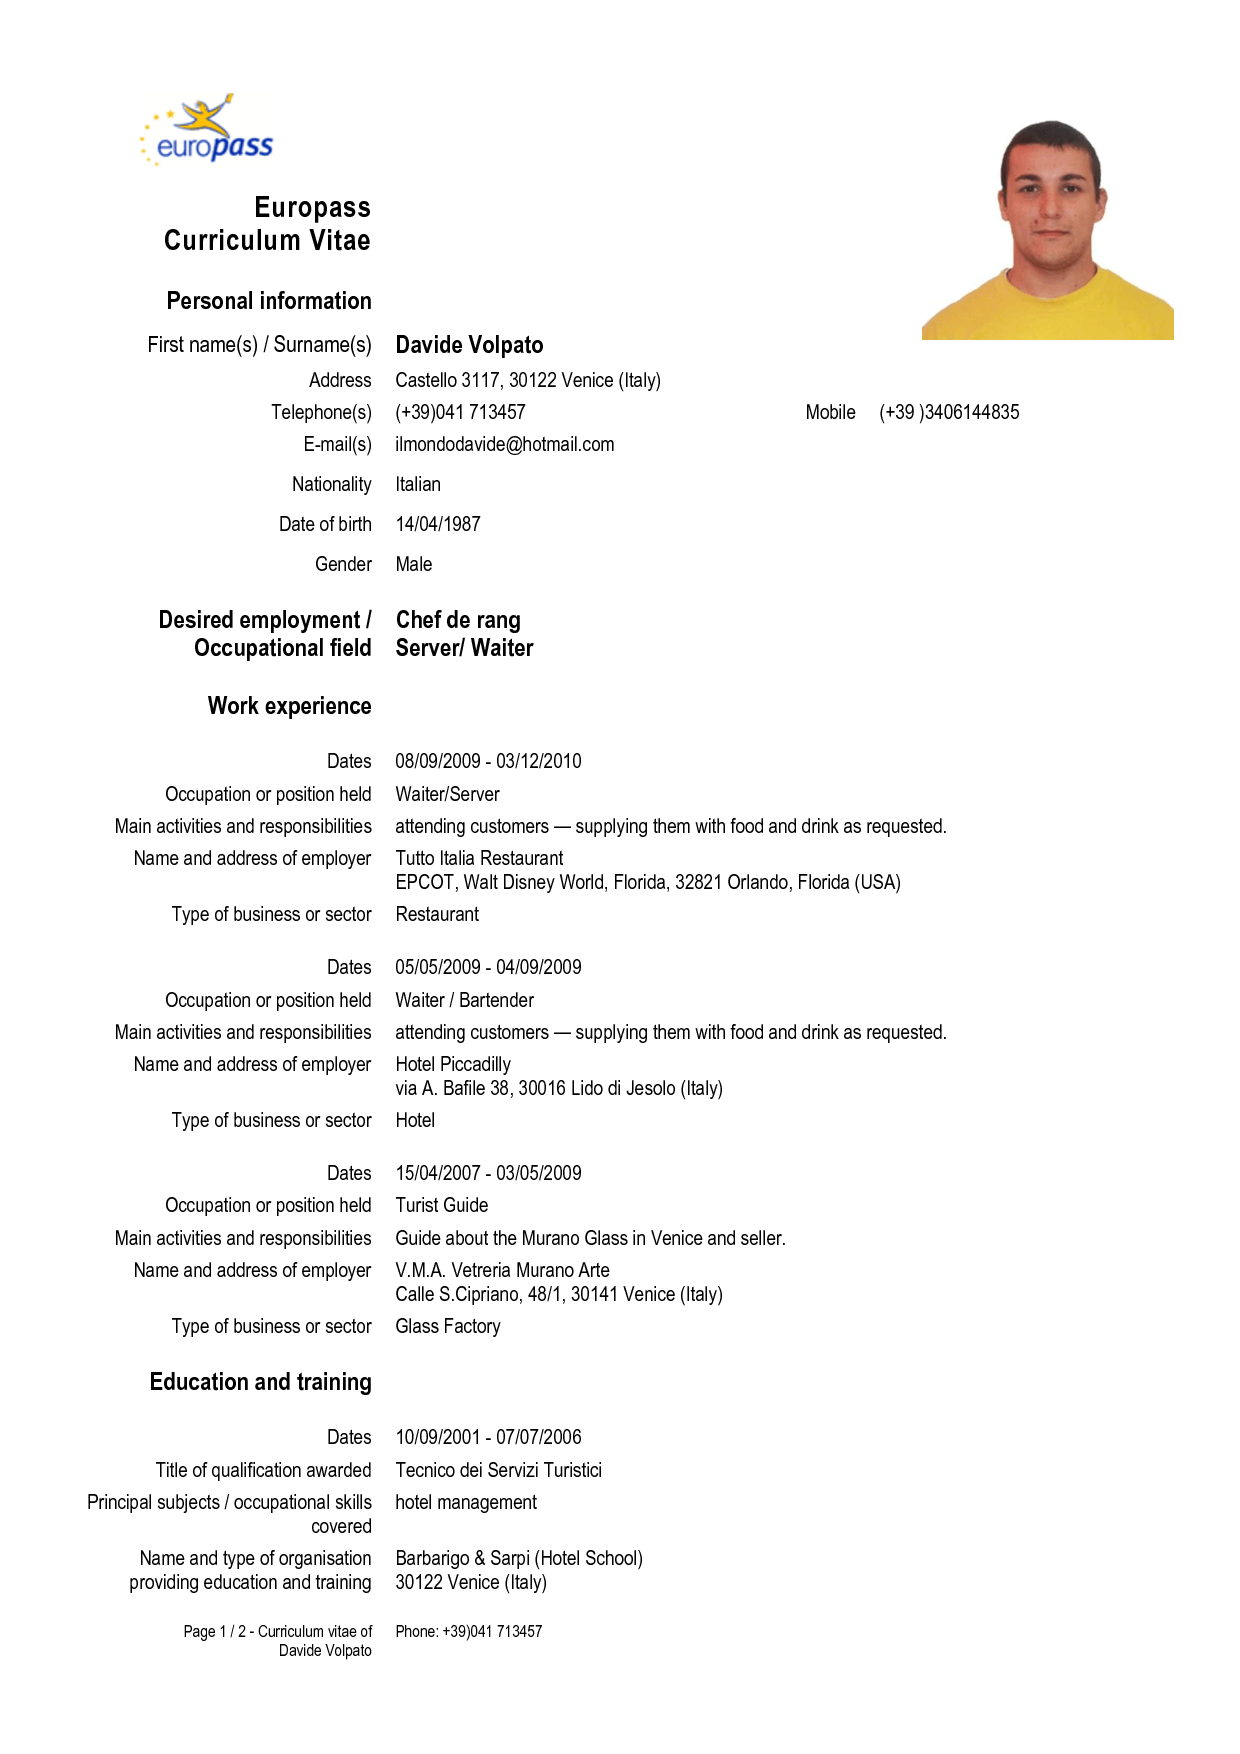 Cv form in english download cv resume examples to download for free cv form in english download cv resume examples to download for free slideshare europass cv download now doc by linzhengnd yelopaper